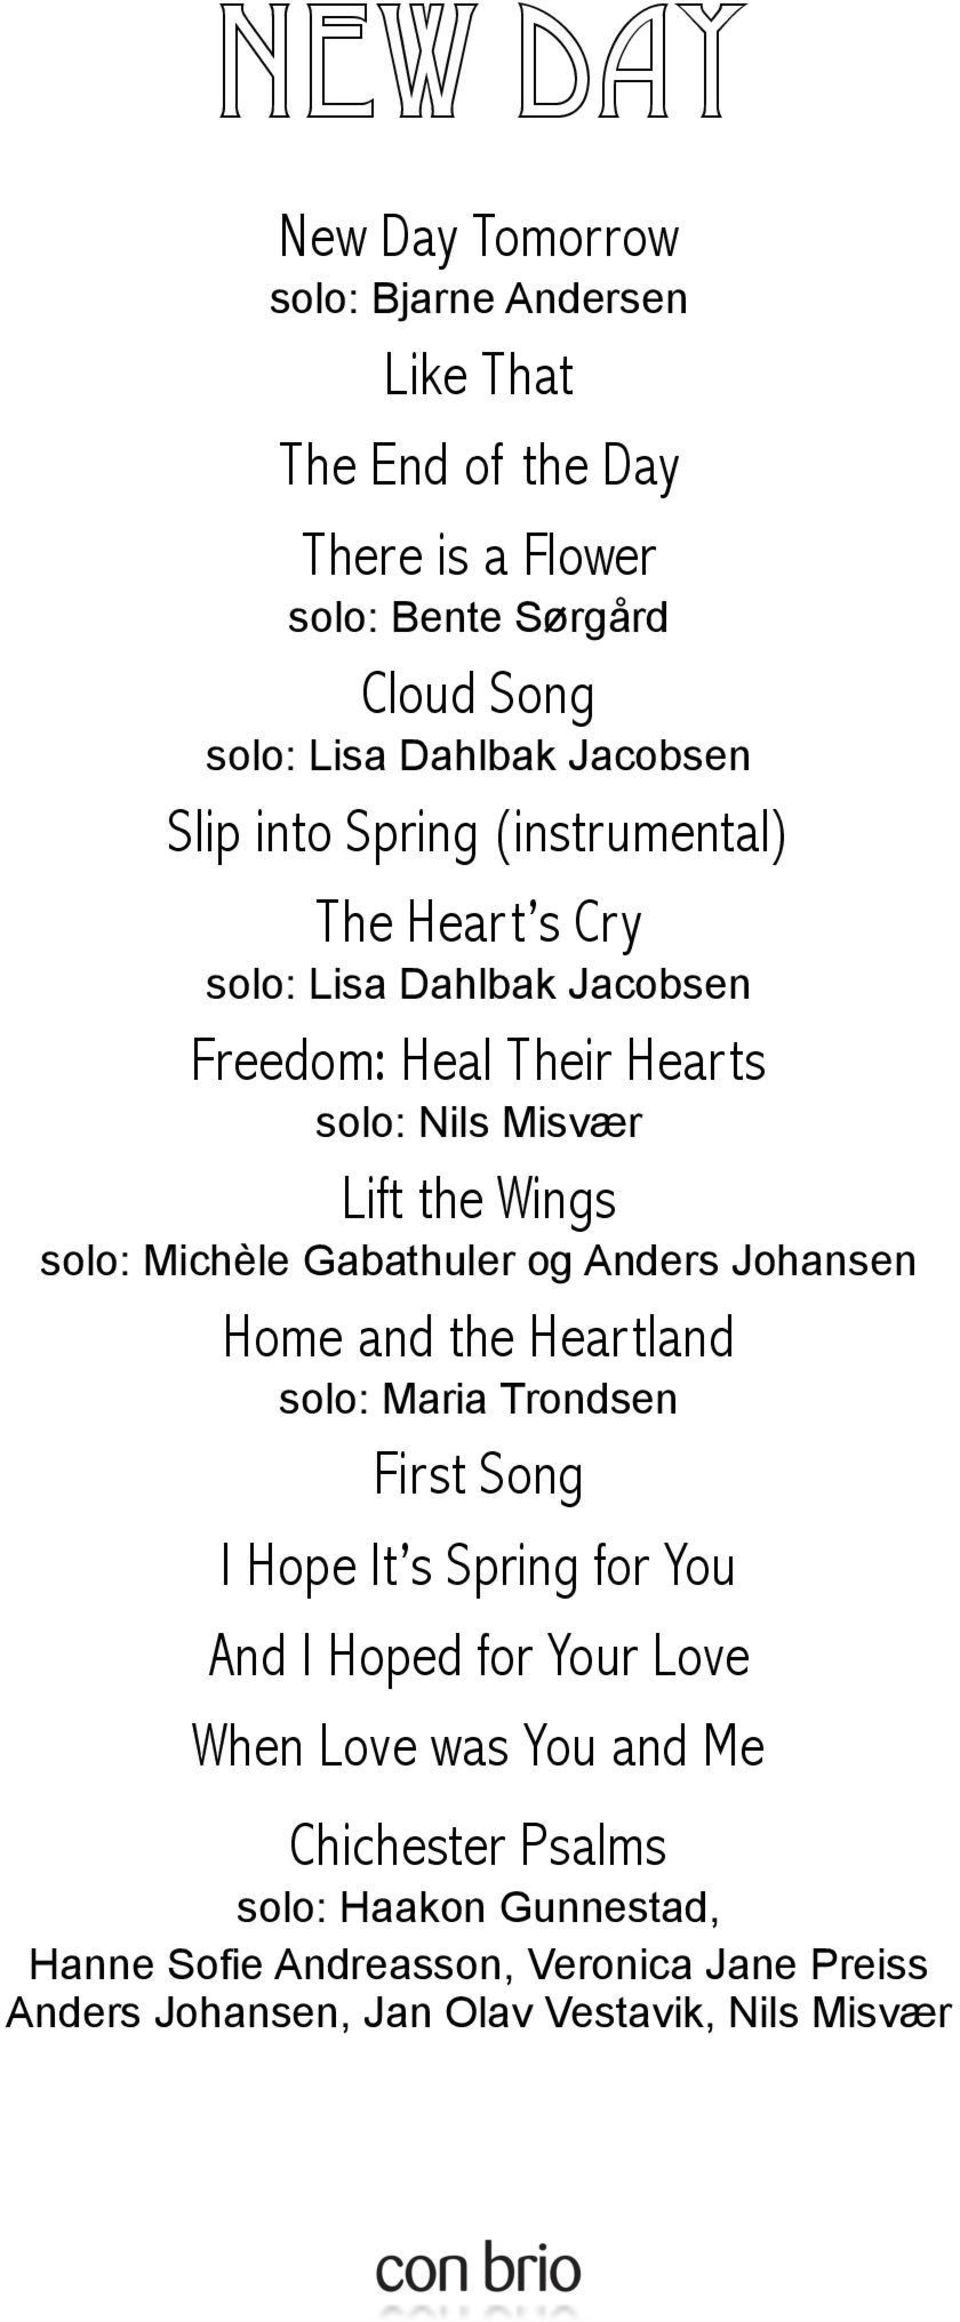 solo: Michèle Gabathuler og Anders Johansen Home and the Heartland solo: Maria Trondsen First Song I Hope It s Spring for You And I Hoped for Your